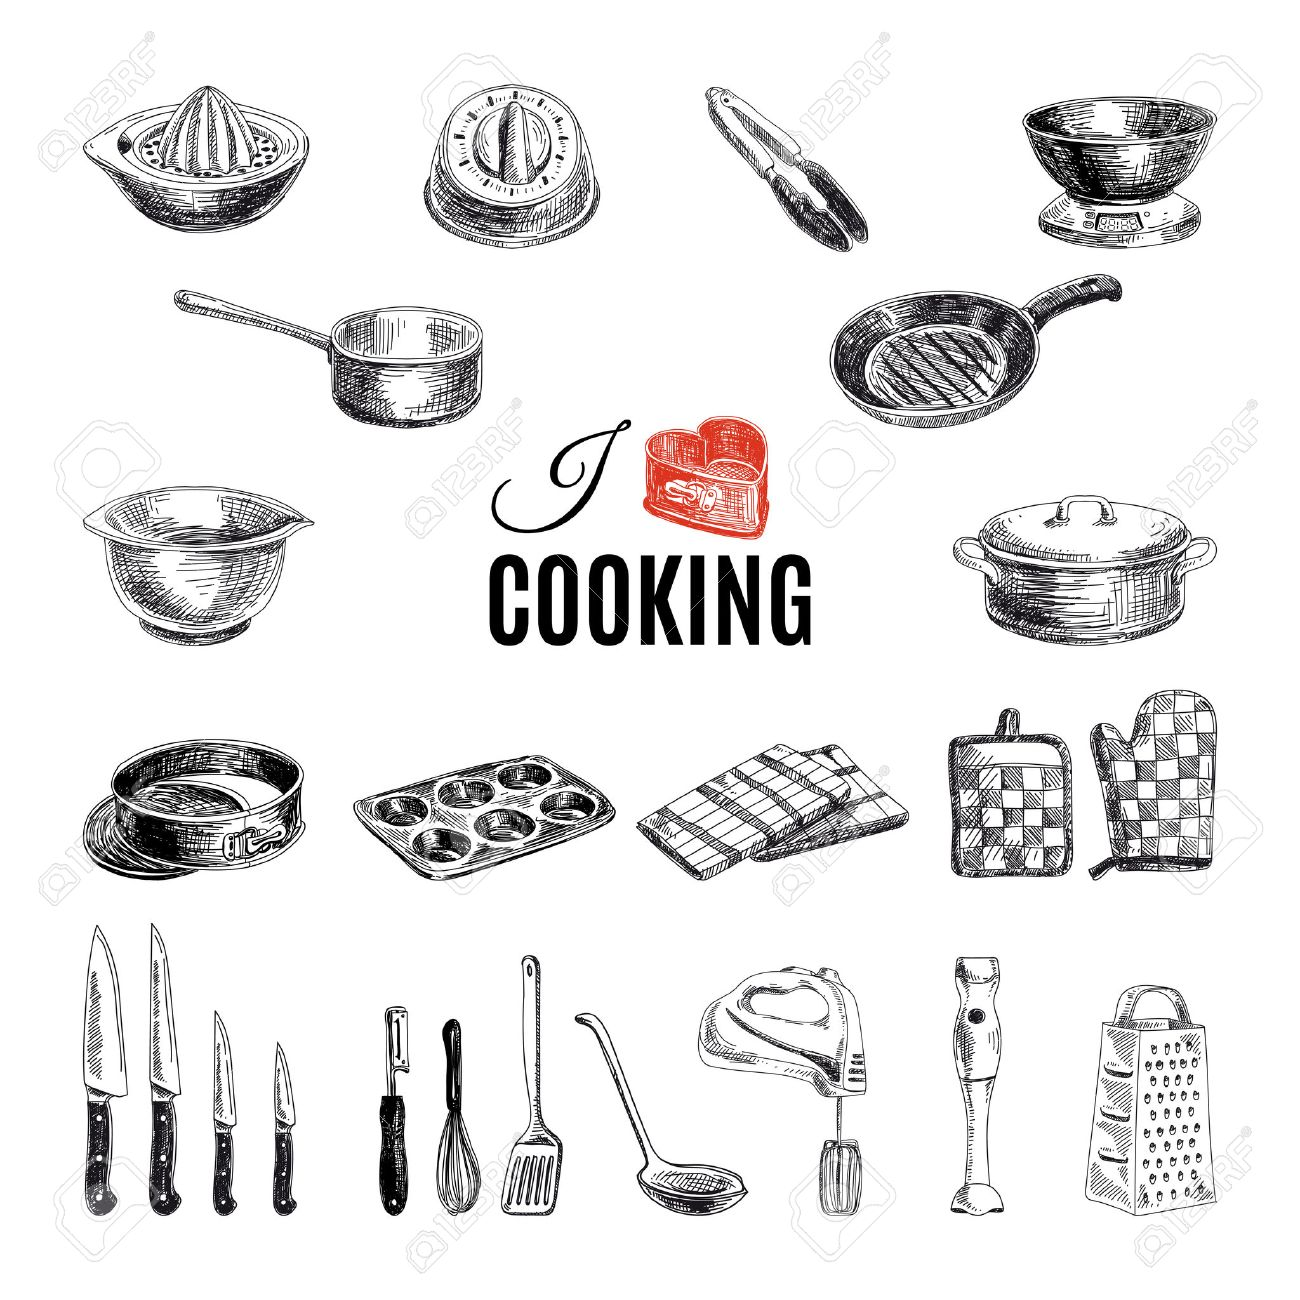 Vector hand drawn illustration with kitchen tools. Sketch. - 43333367